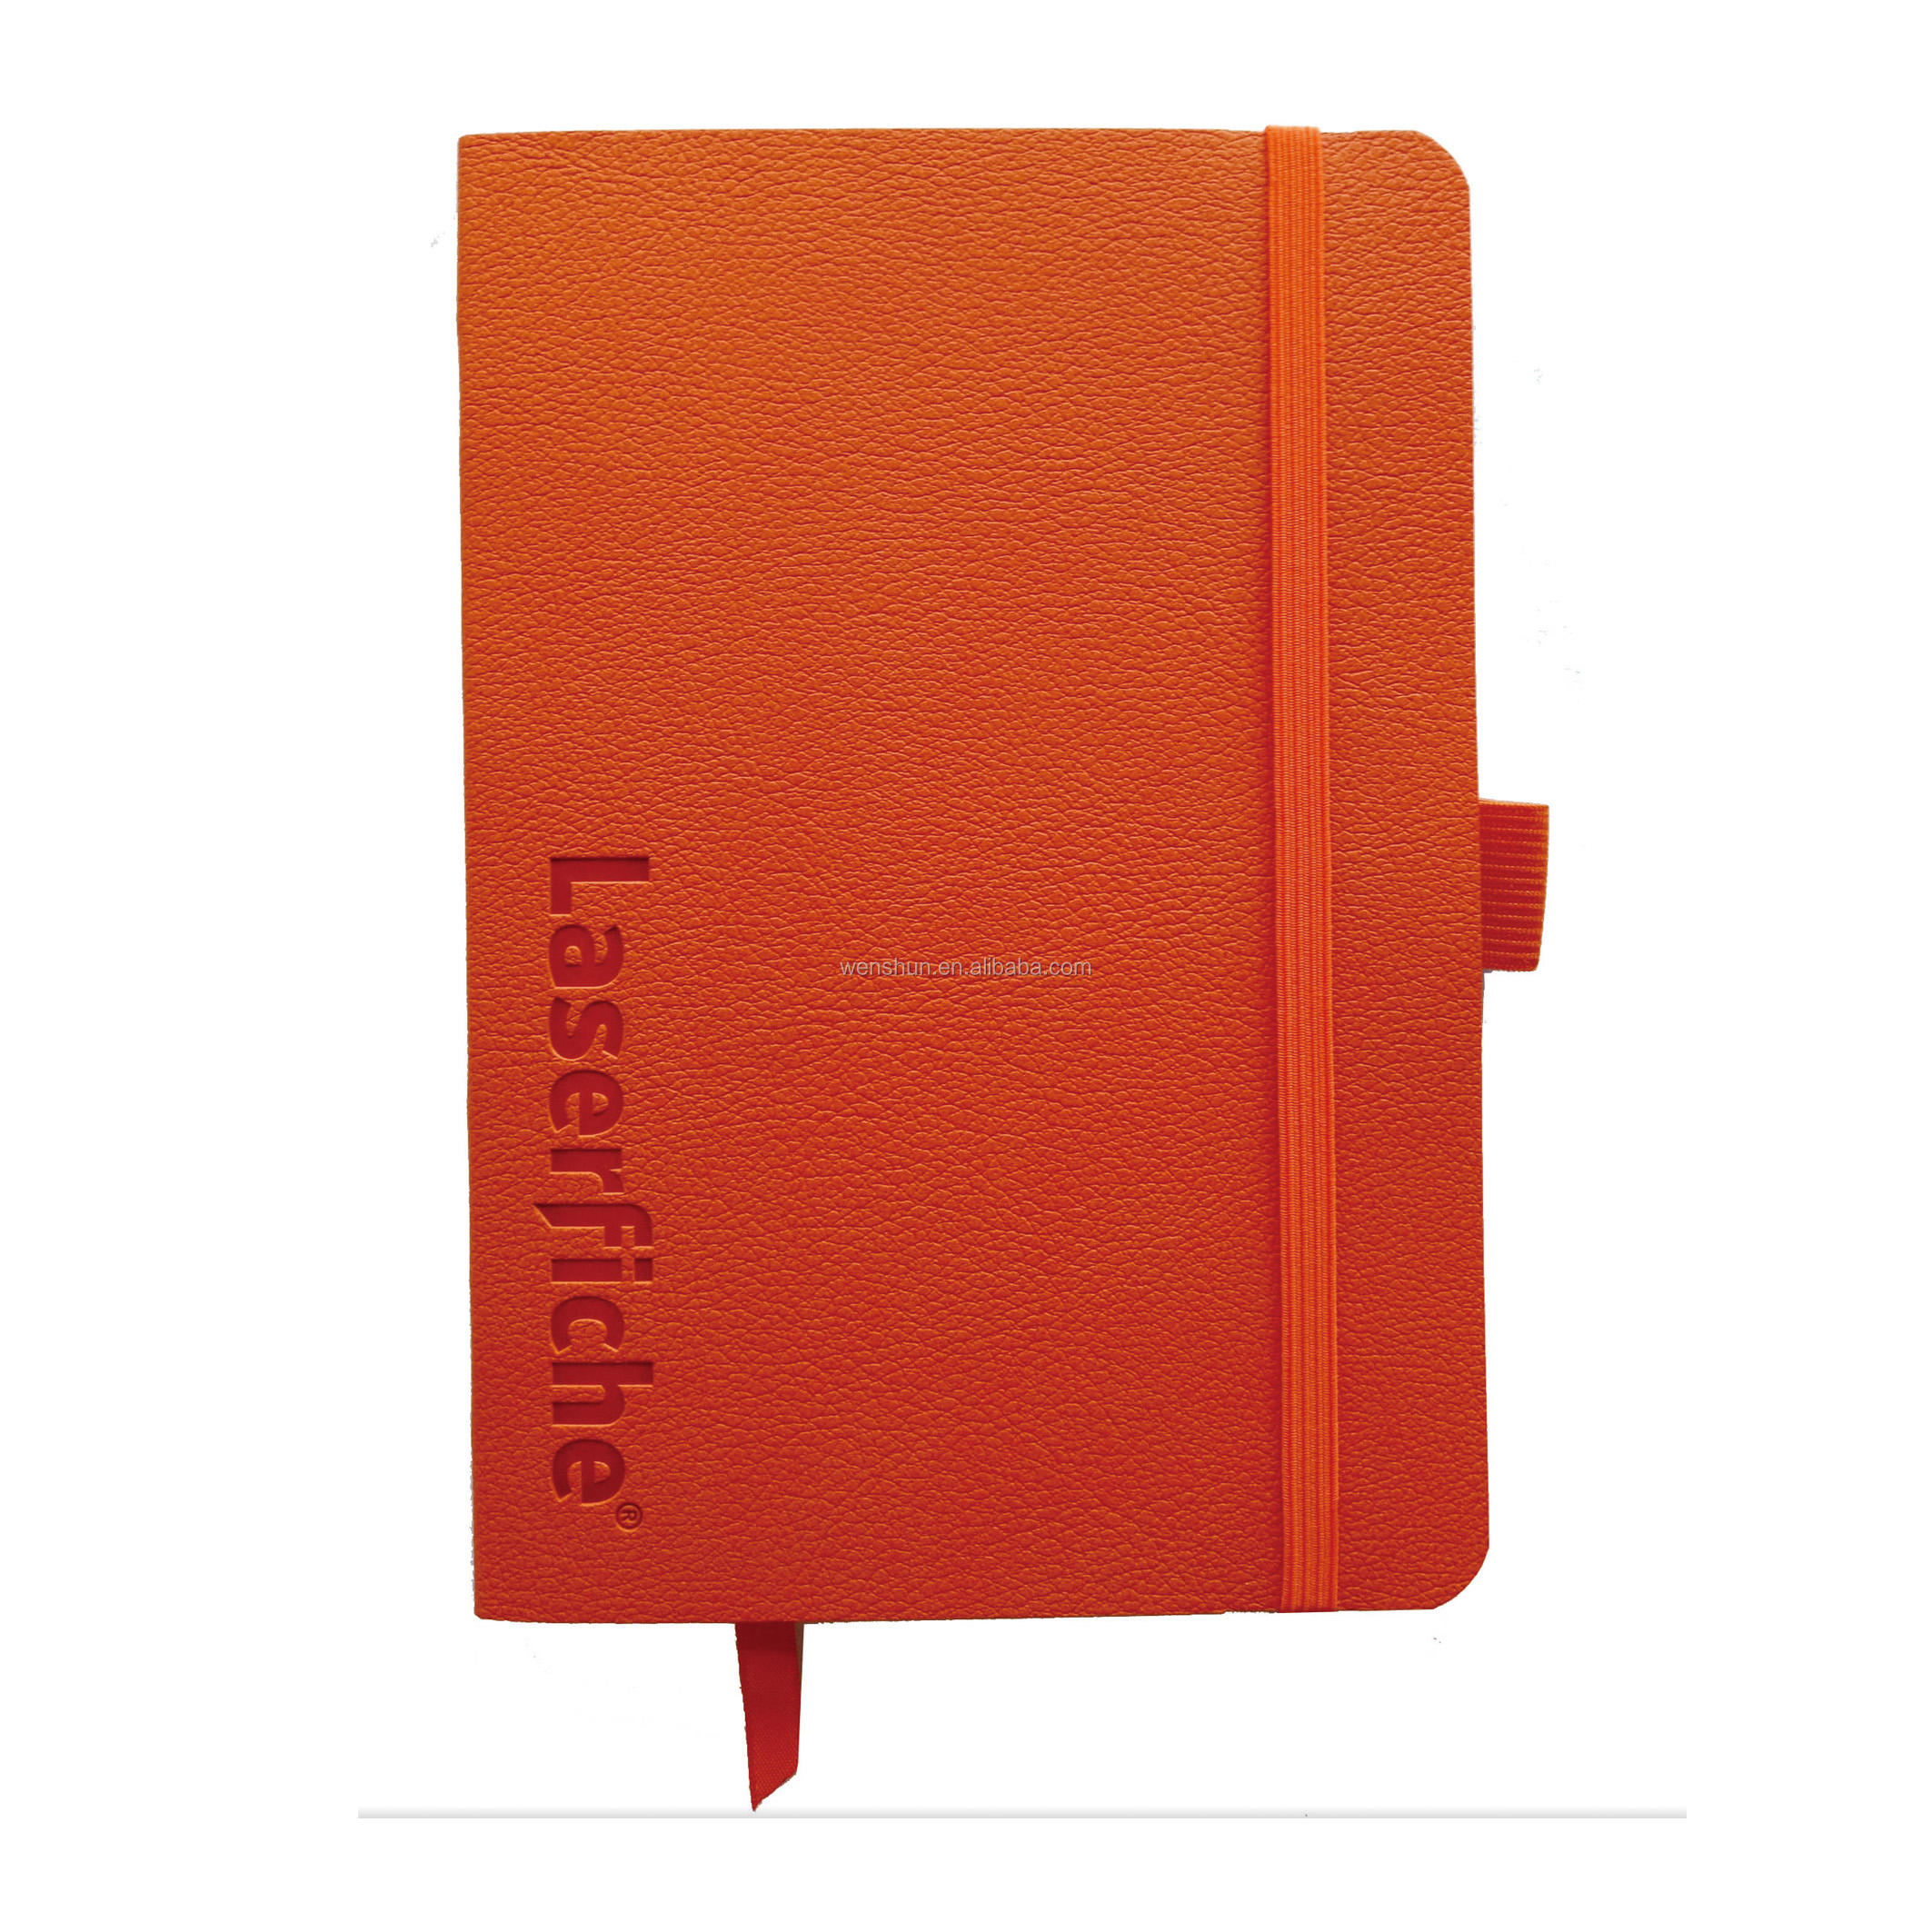 Soft <span class=keywords><strong>Touch</strong></span> Hardcover <span class=keywords><strong>Notebook</strong></span> Cuoio DELL'UNITÀ di elaborazione di A5 Rilievo Diario <span class=keywords><strong>Notebook</strong></span>